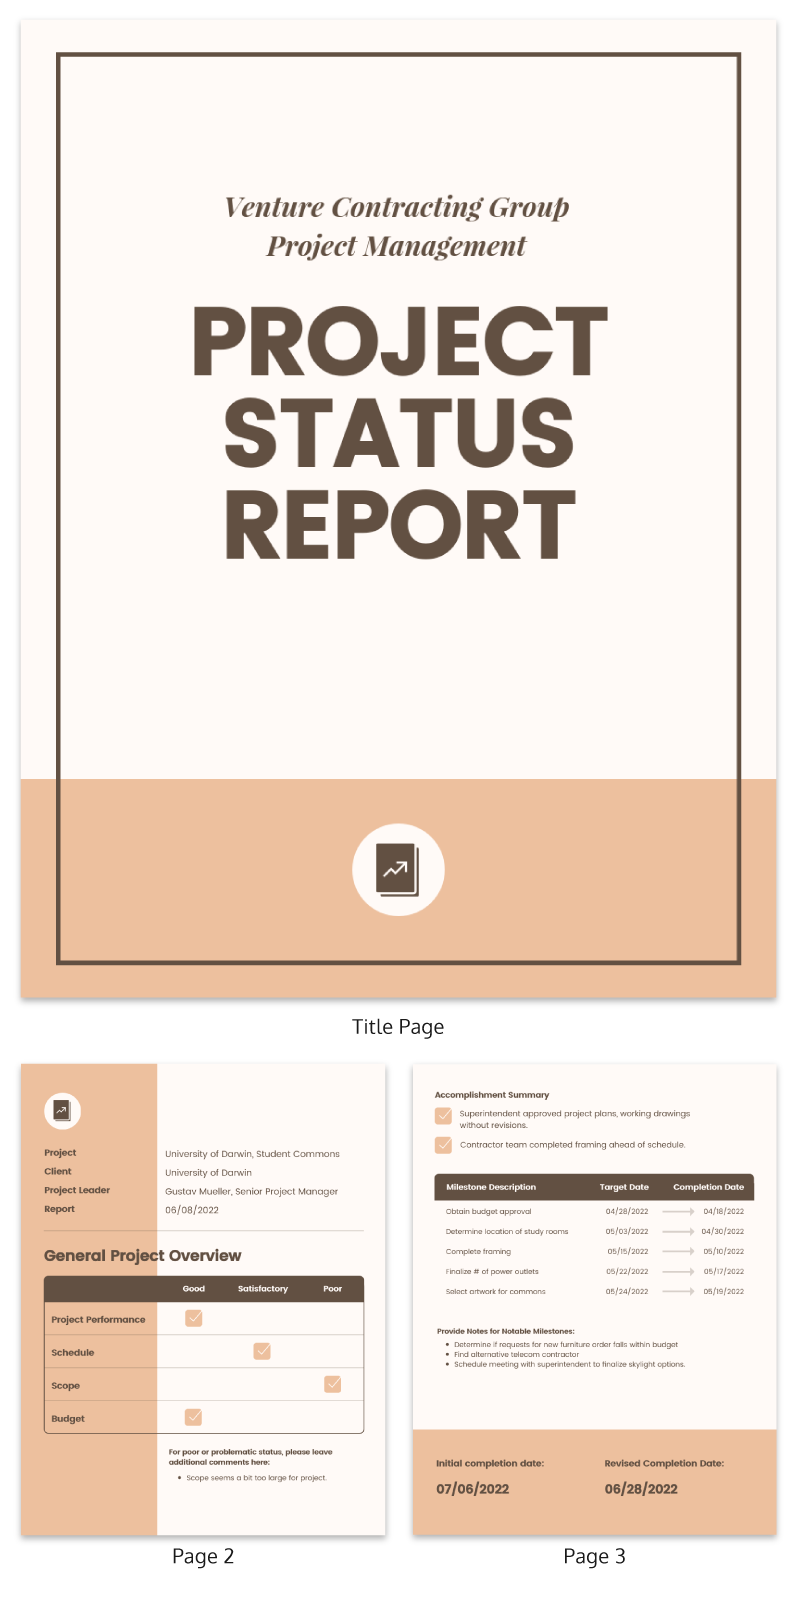 Project status report example